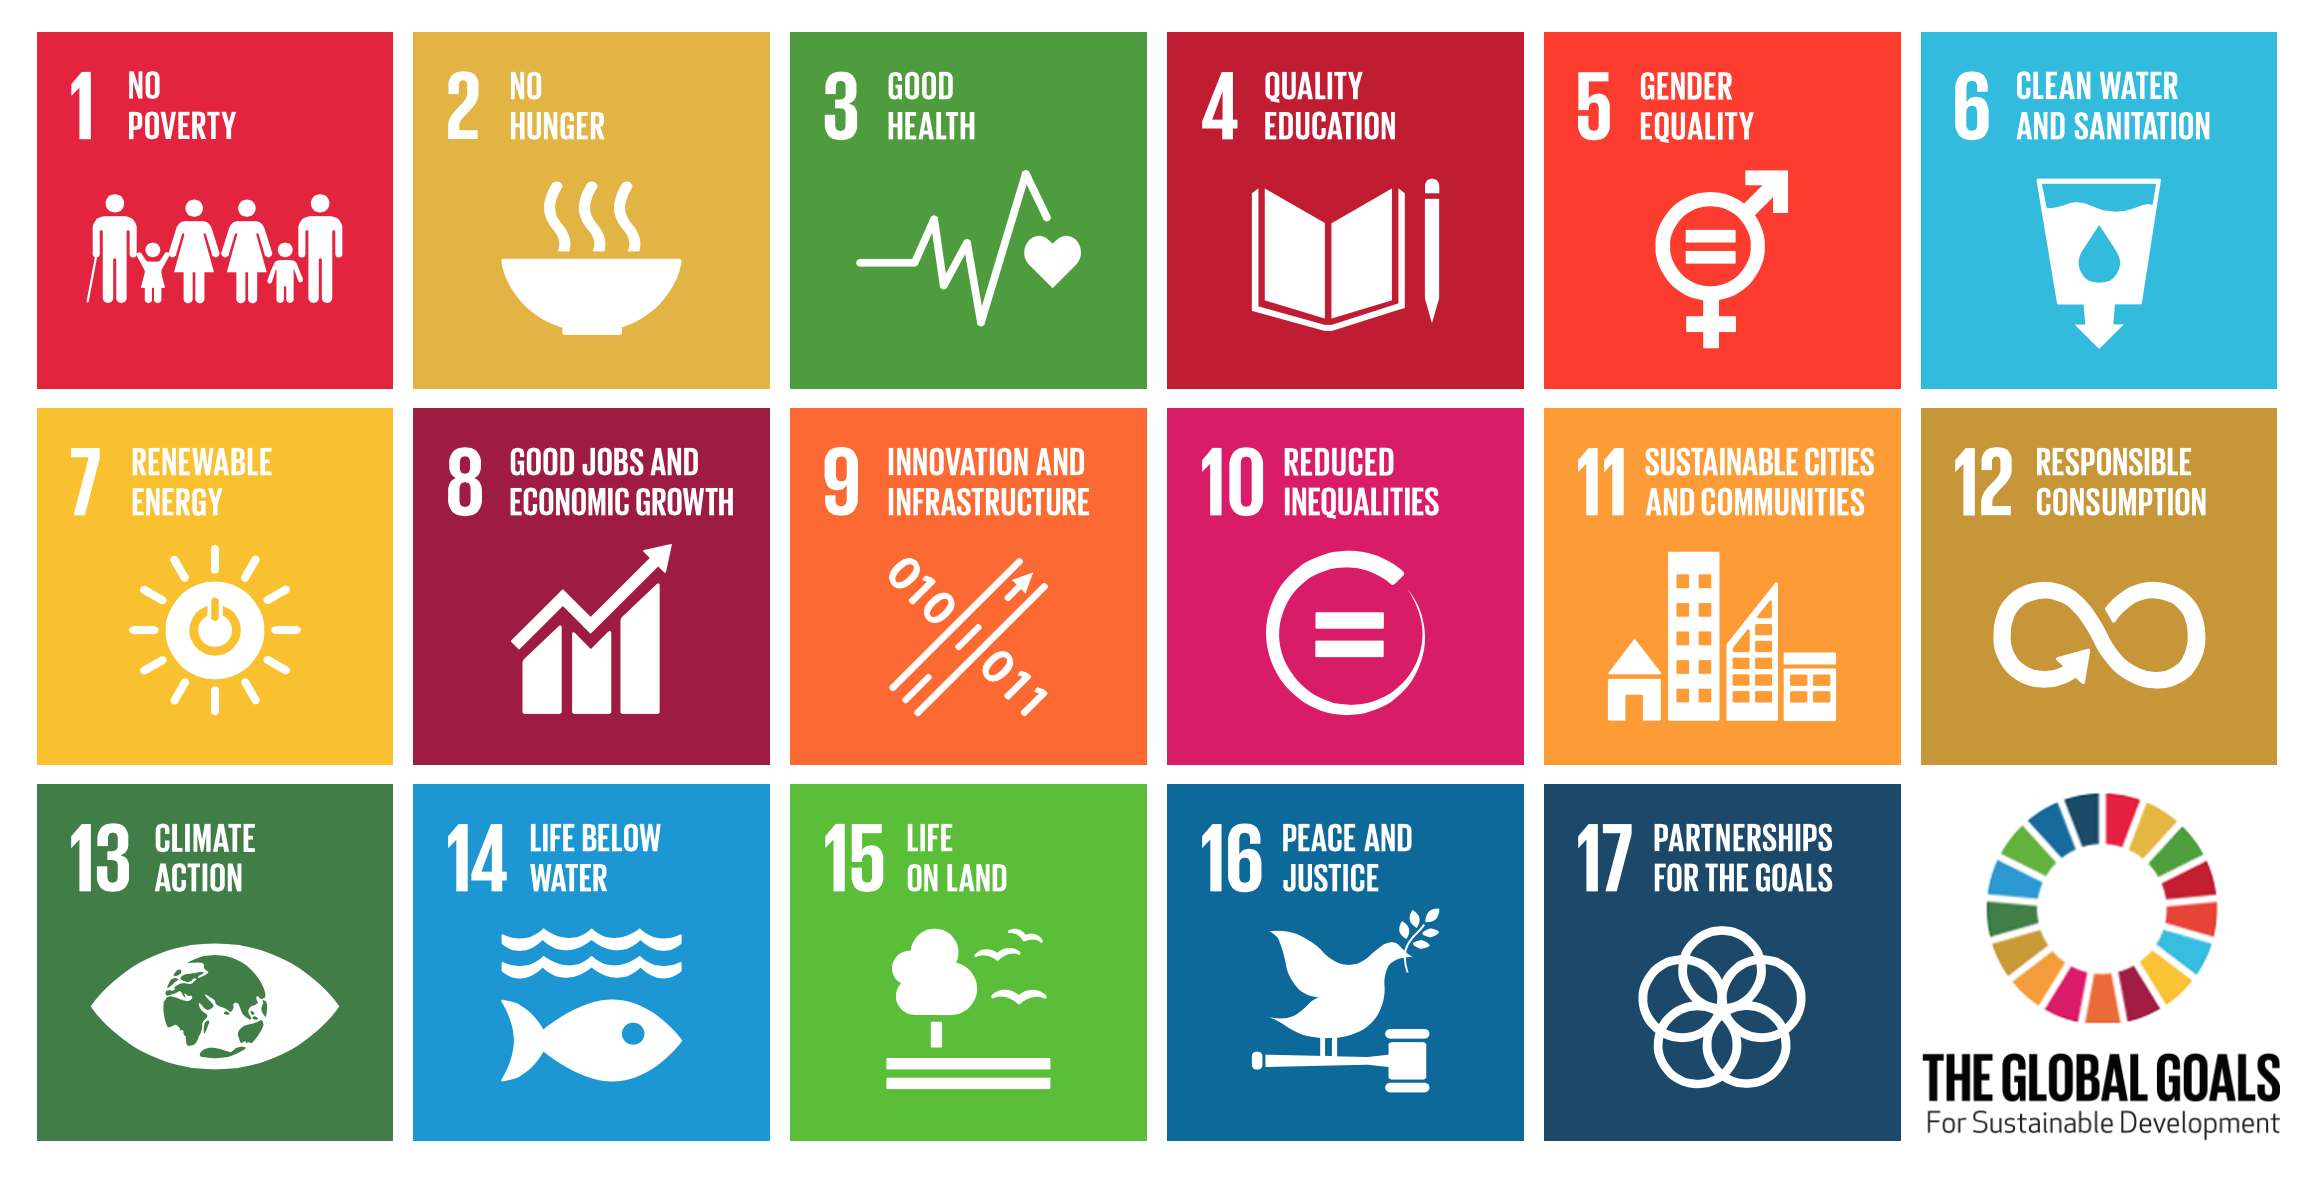 How Are We Doing on the SDGs?